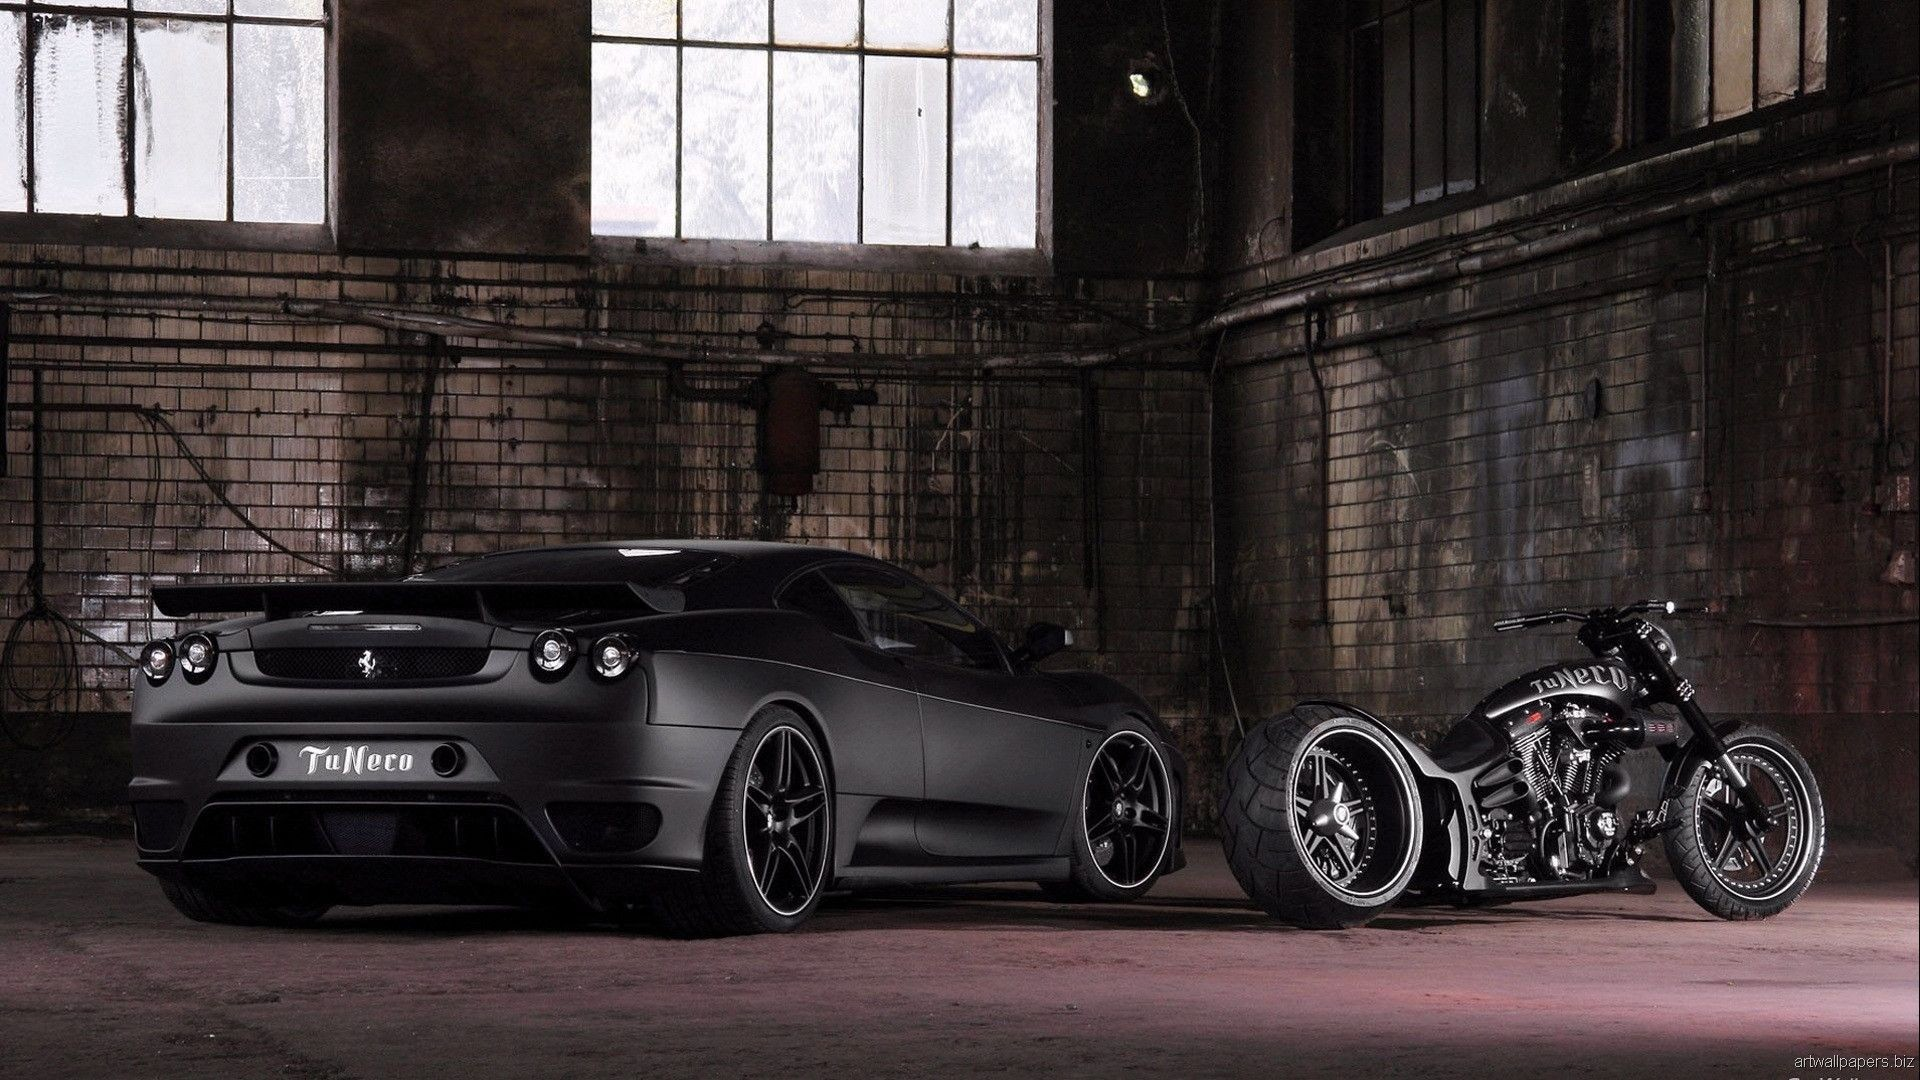 1080p Wallpapers HD Cars-8